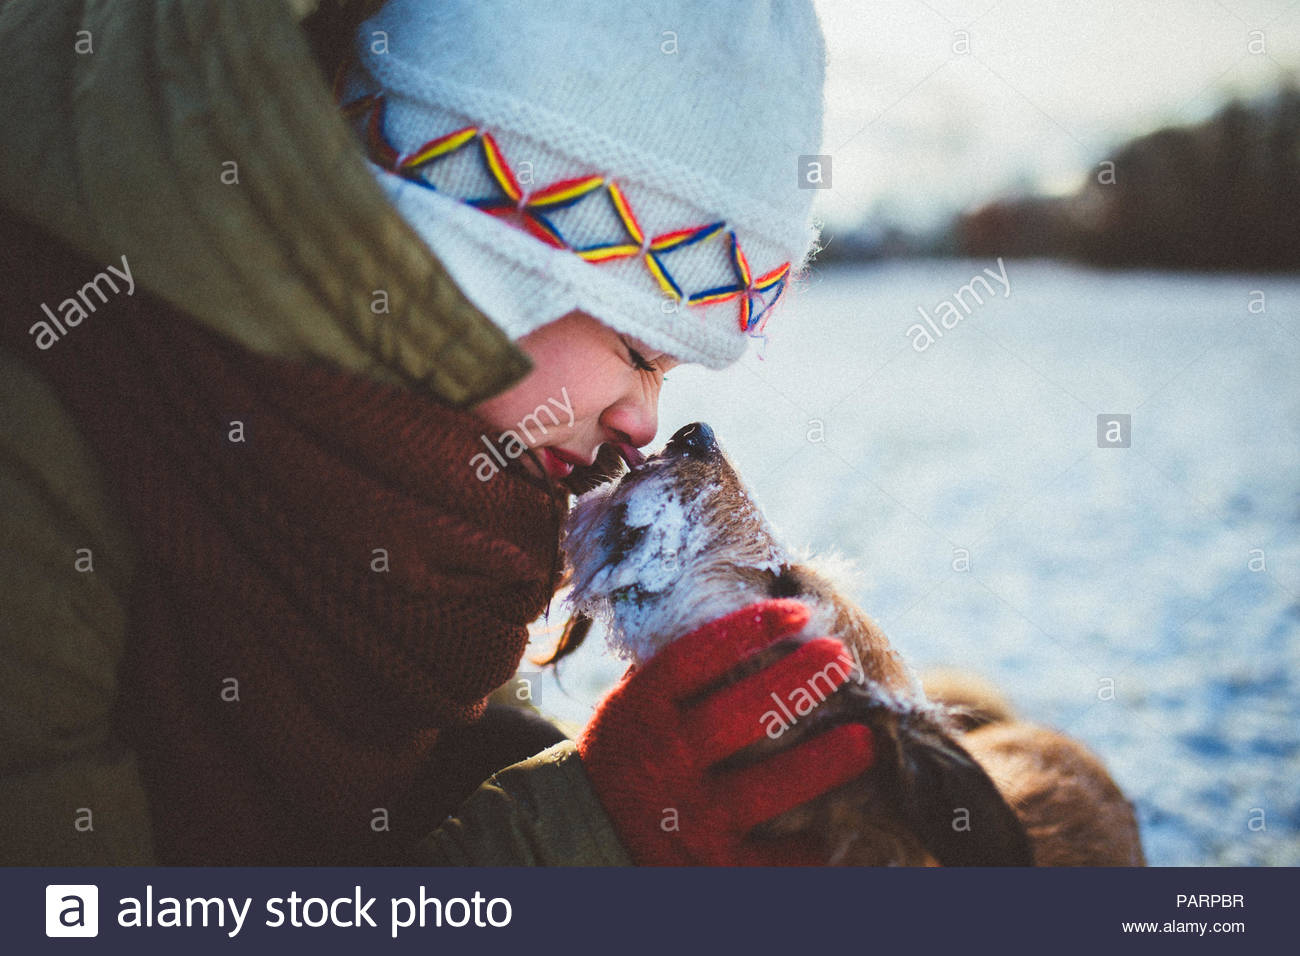 Woman with her cute pet dog in the snow - Stock Image